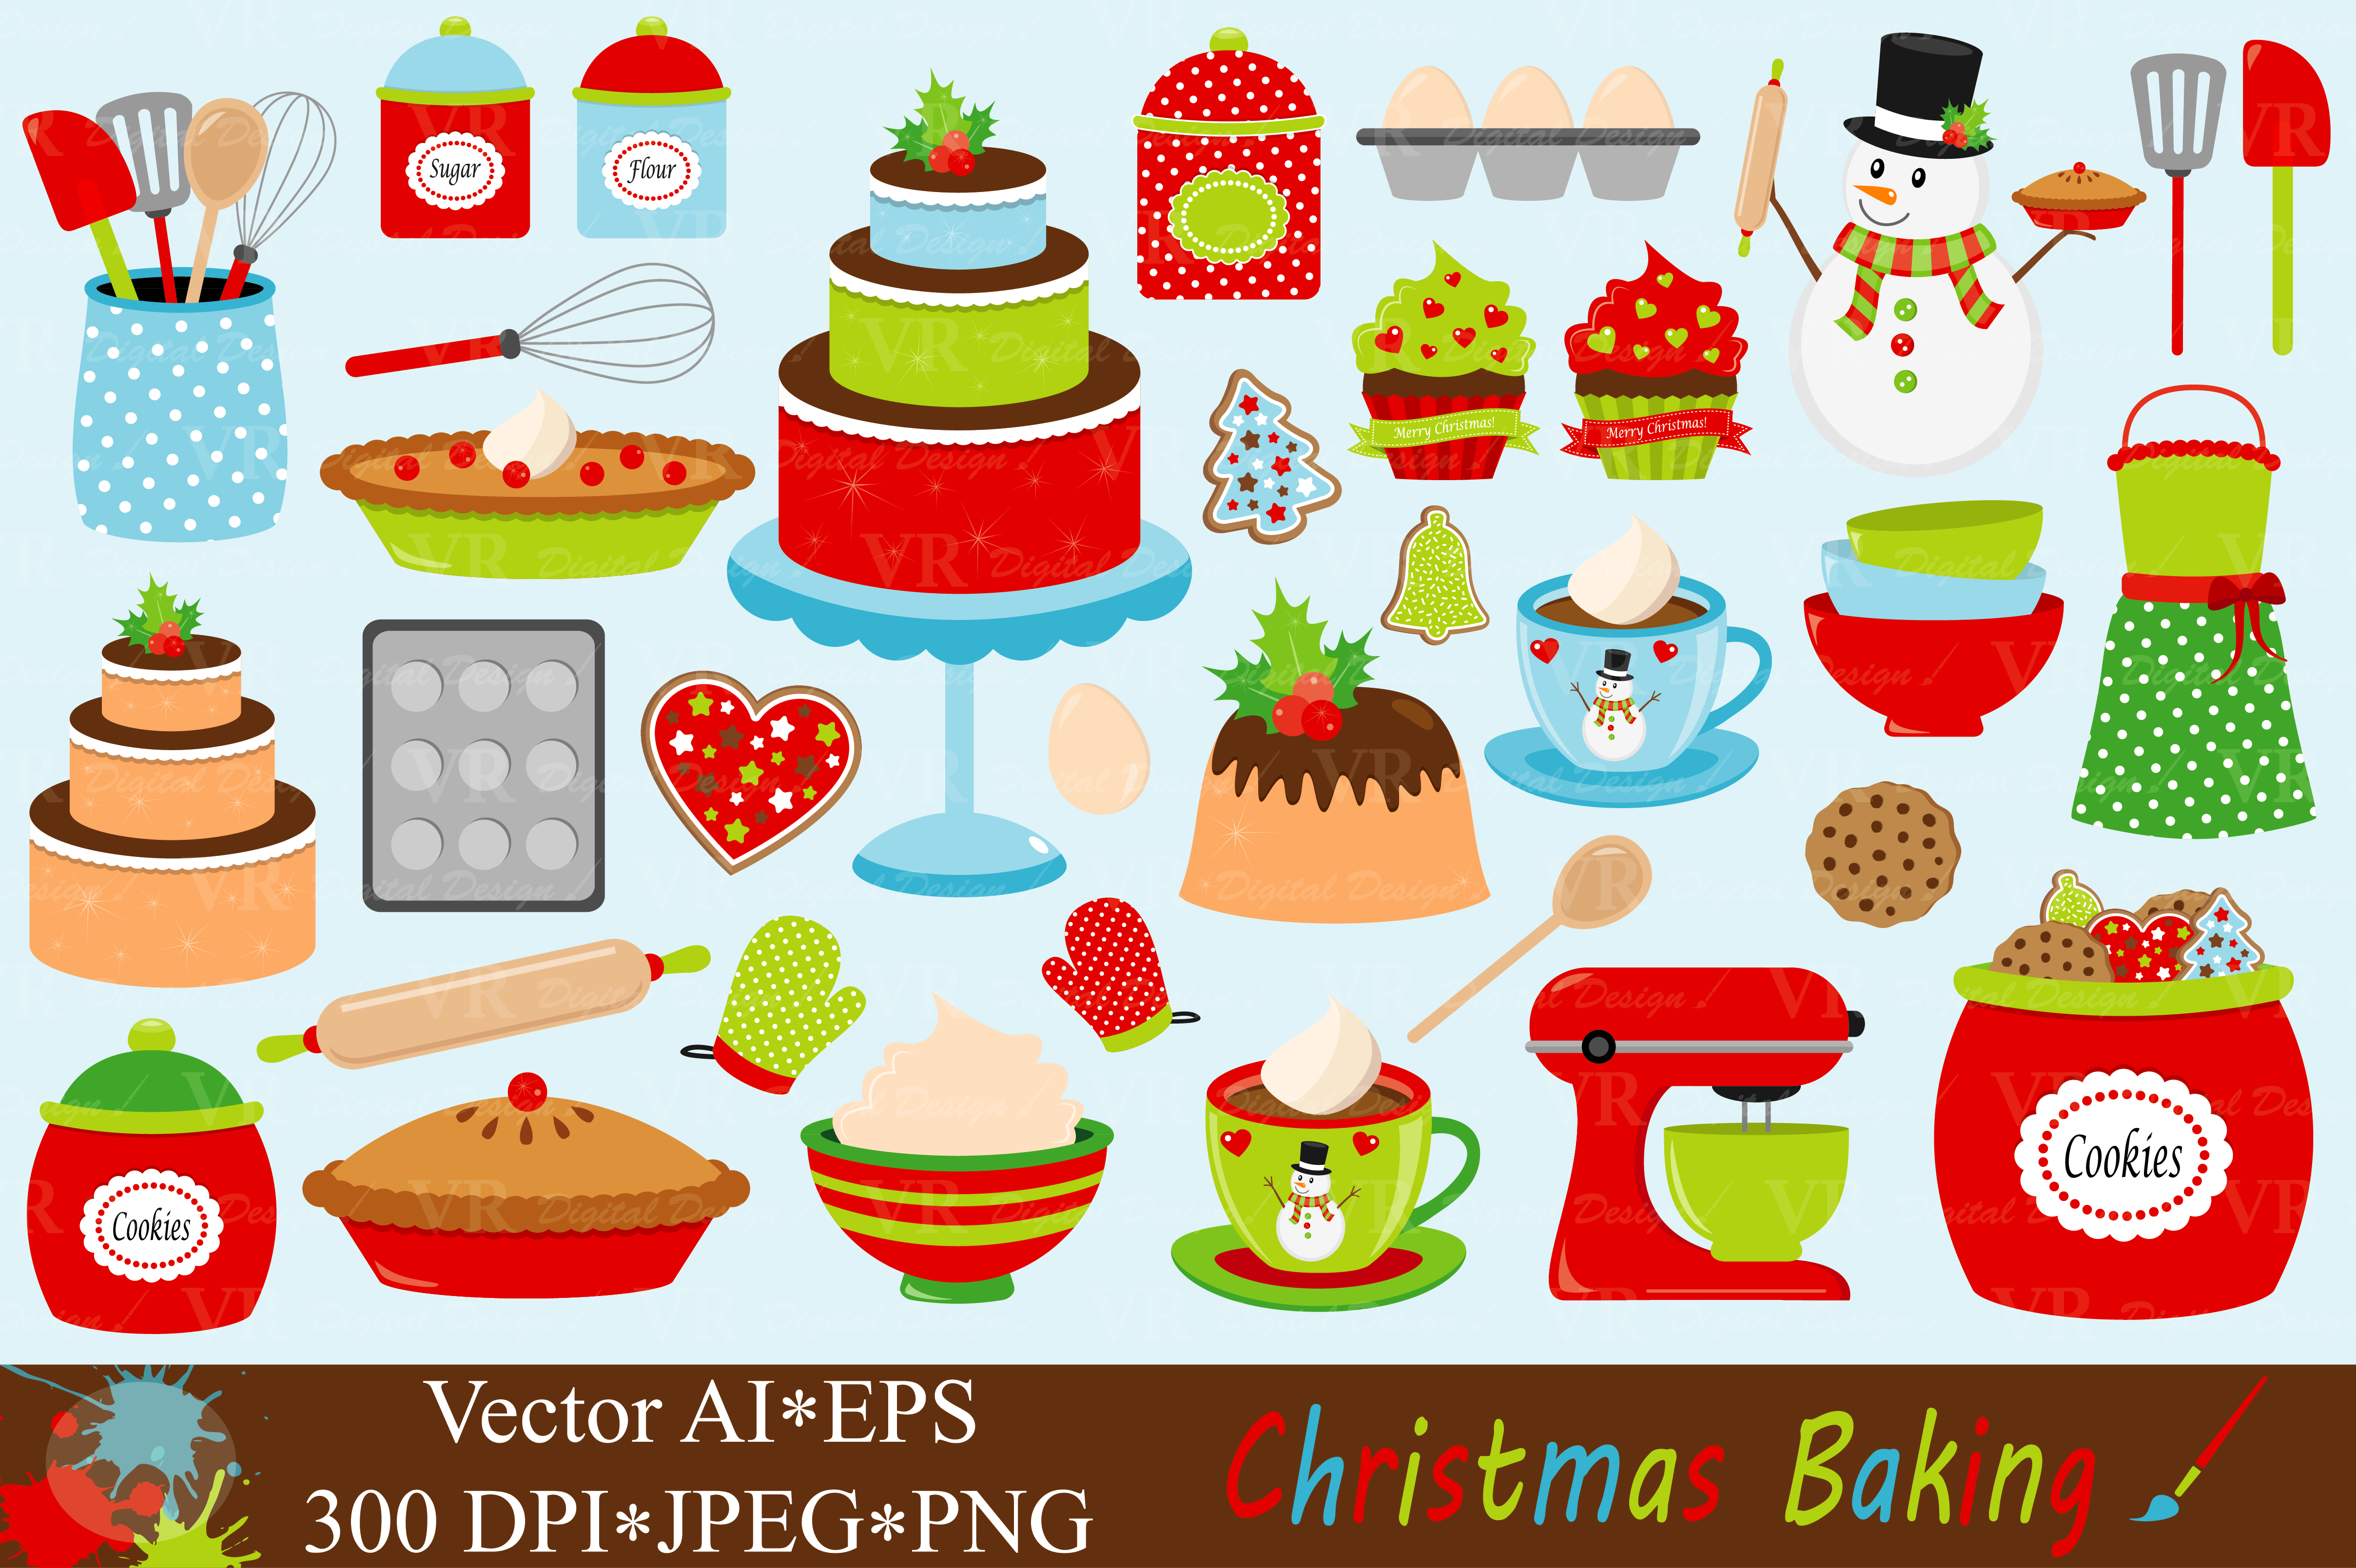 Download Free Christmas Baking Clipart Vector Graphic By Vr Digital Design for Cricut Explore, Silhouette and other cutting machines.